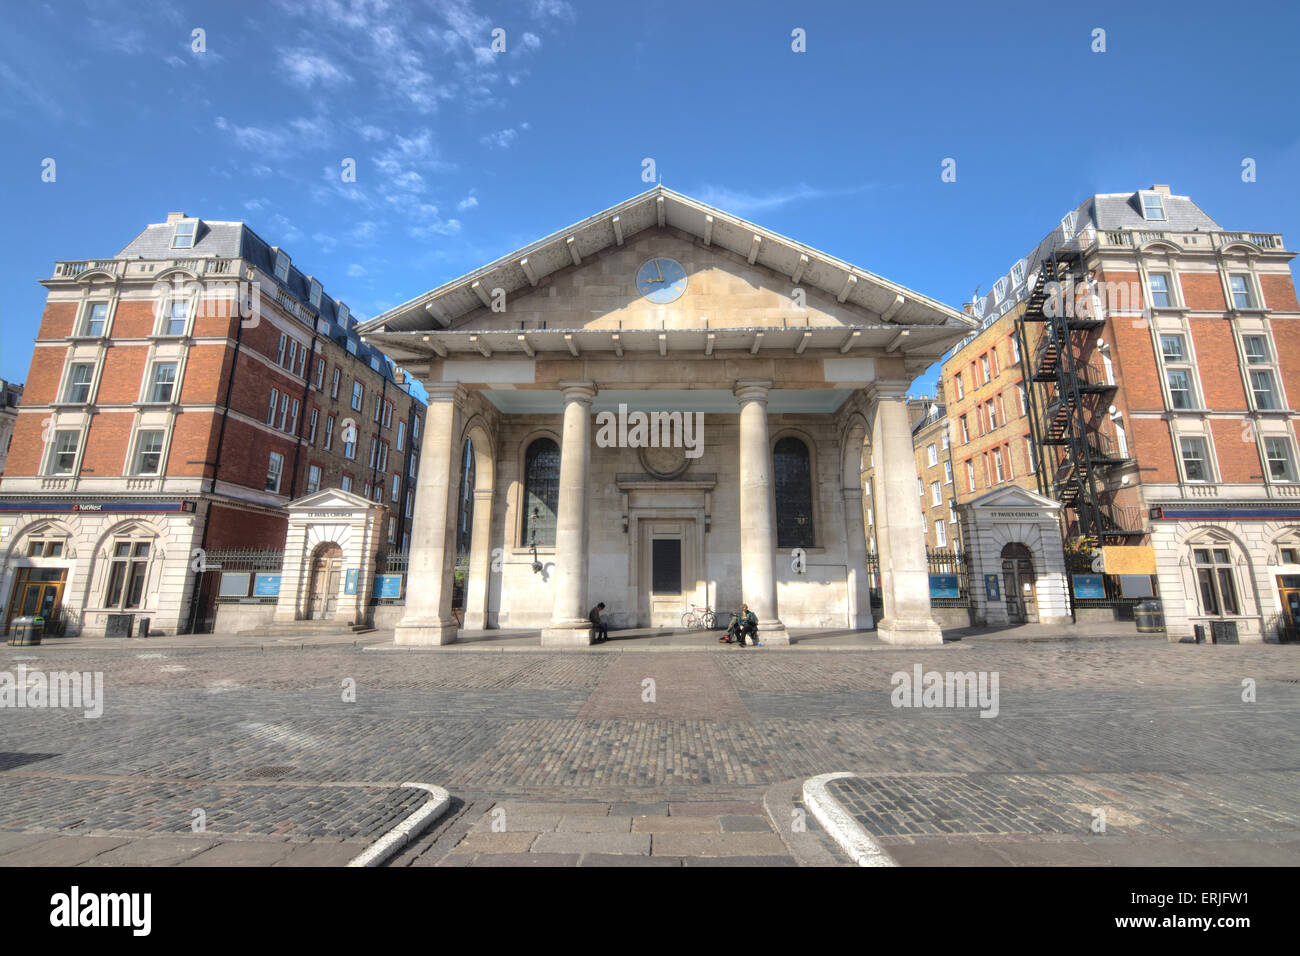 Covent Garden Market London St Paul 39 S Church Stock Photo Royalty Free Image 83386157 Alamy